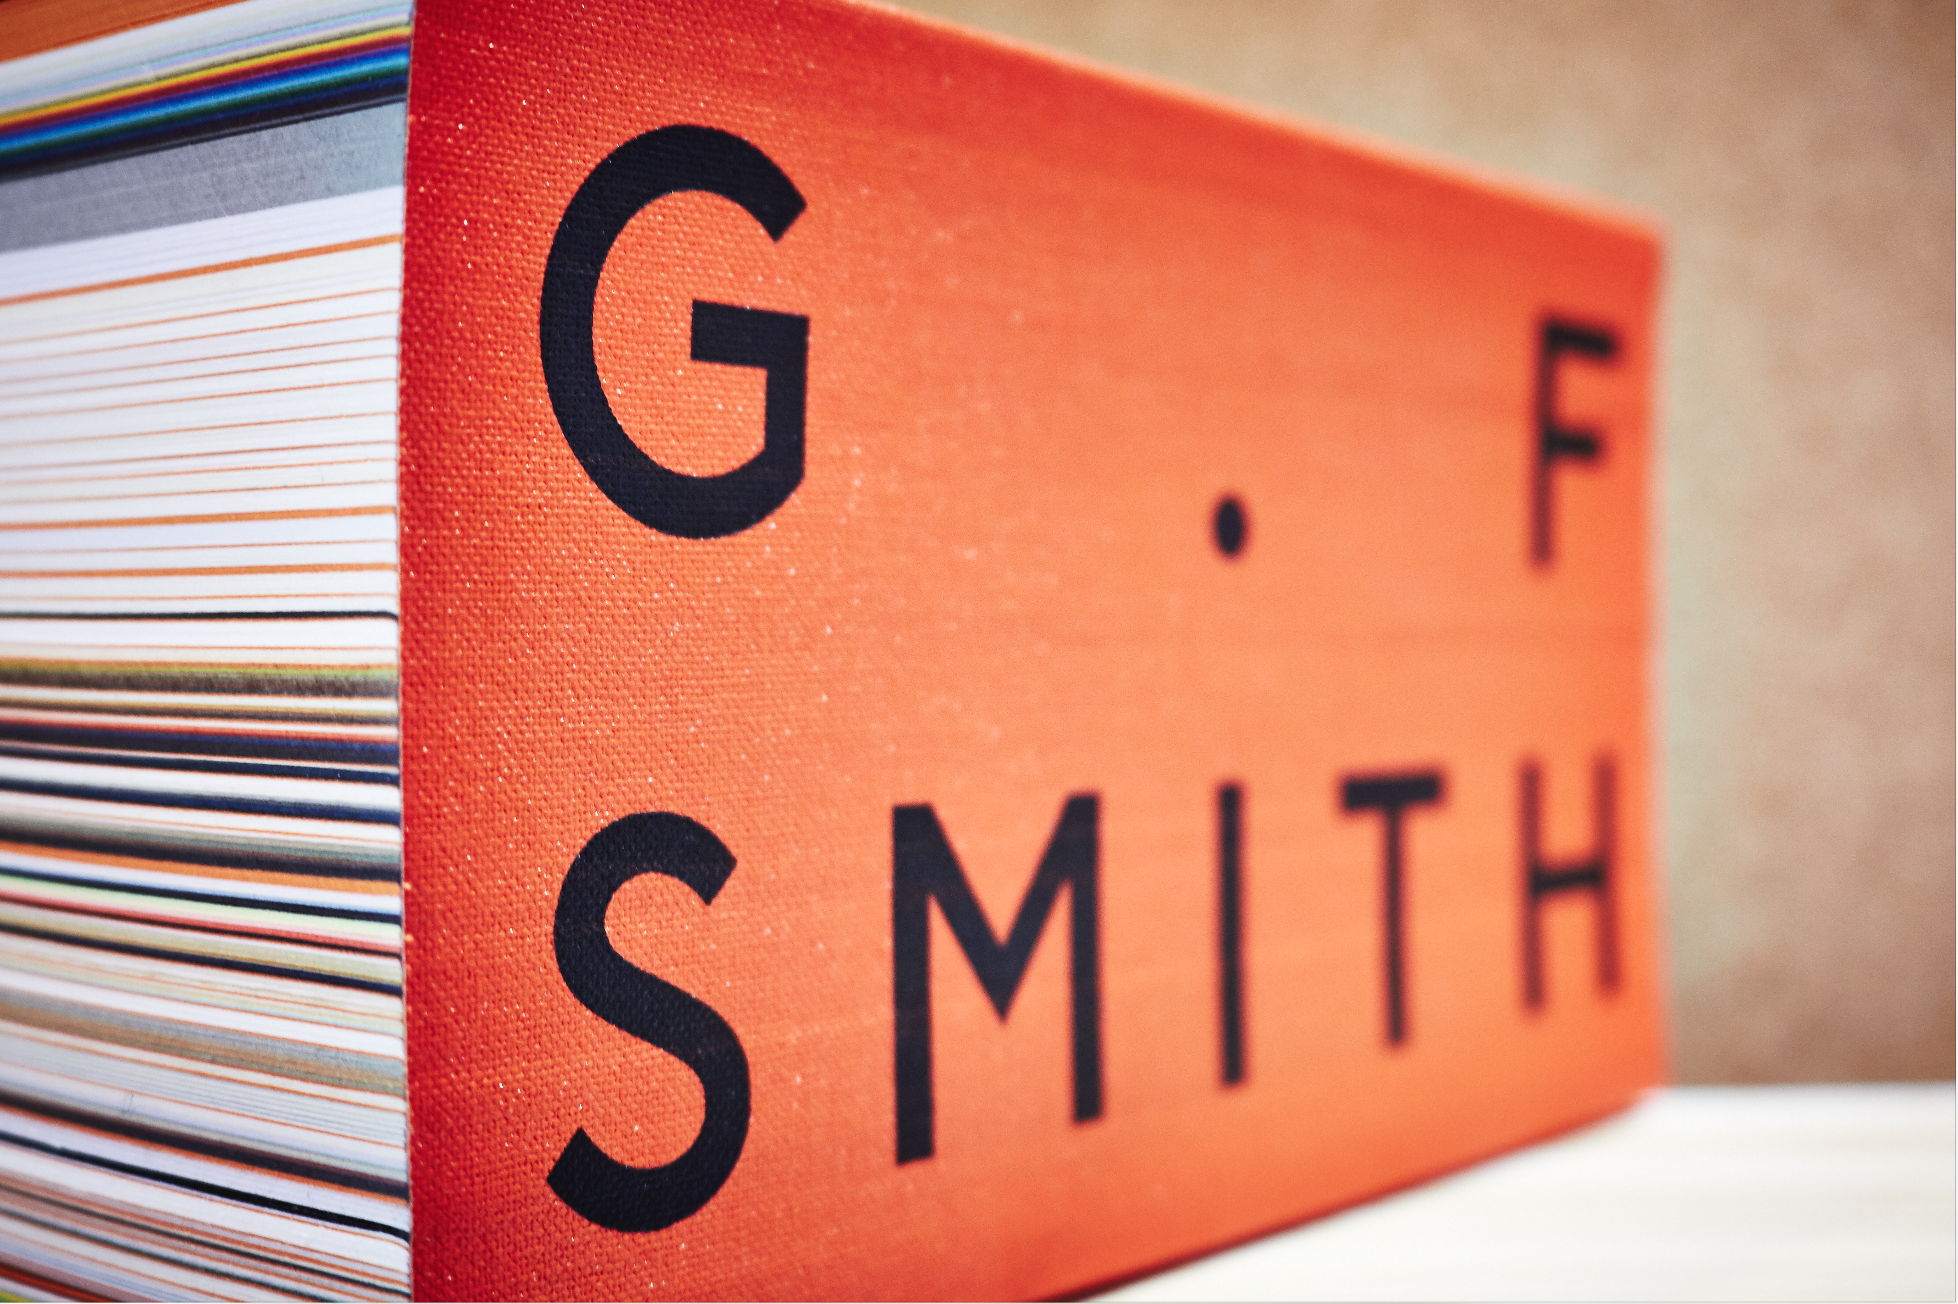 GF Smith paper samples.png